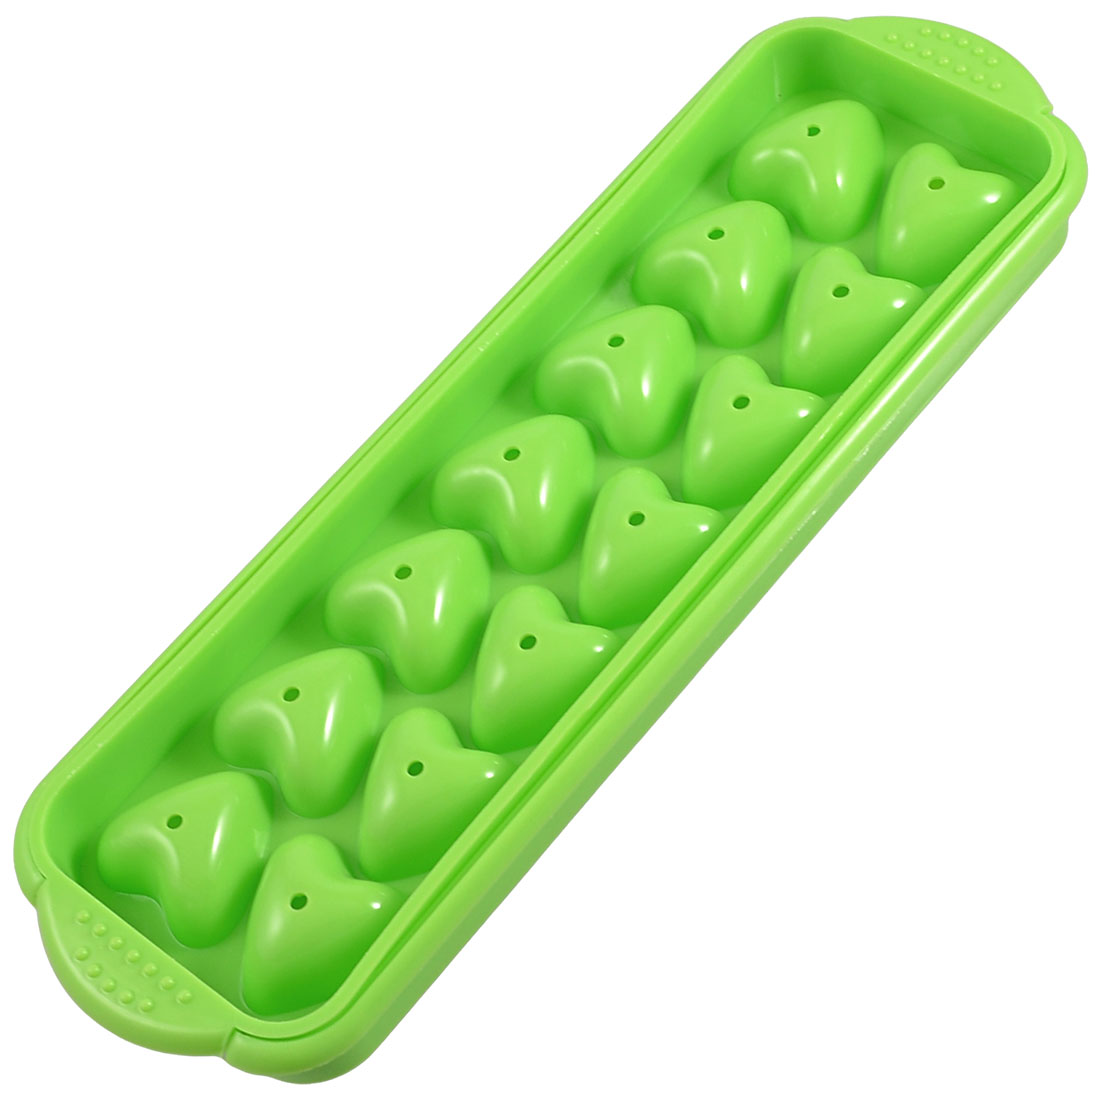 Heart Shape Green Plastic Chocolate Biscuit Mold Ice Cube Tray 2 Pcs